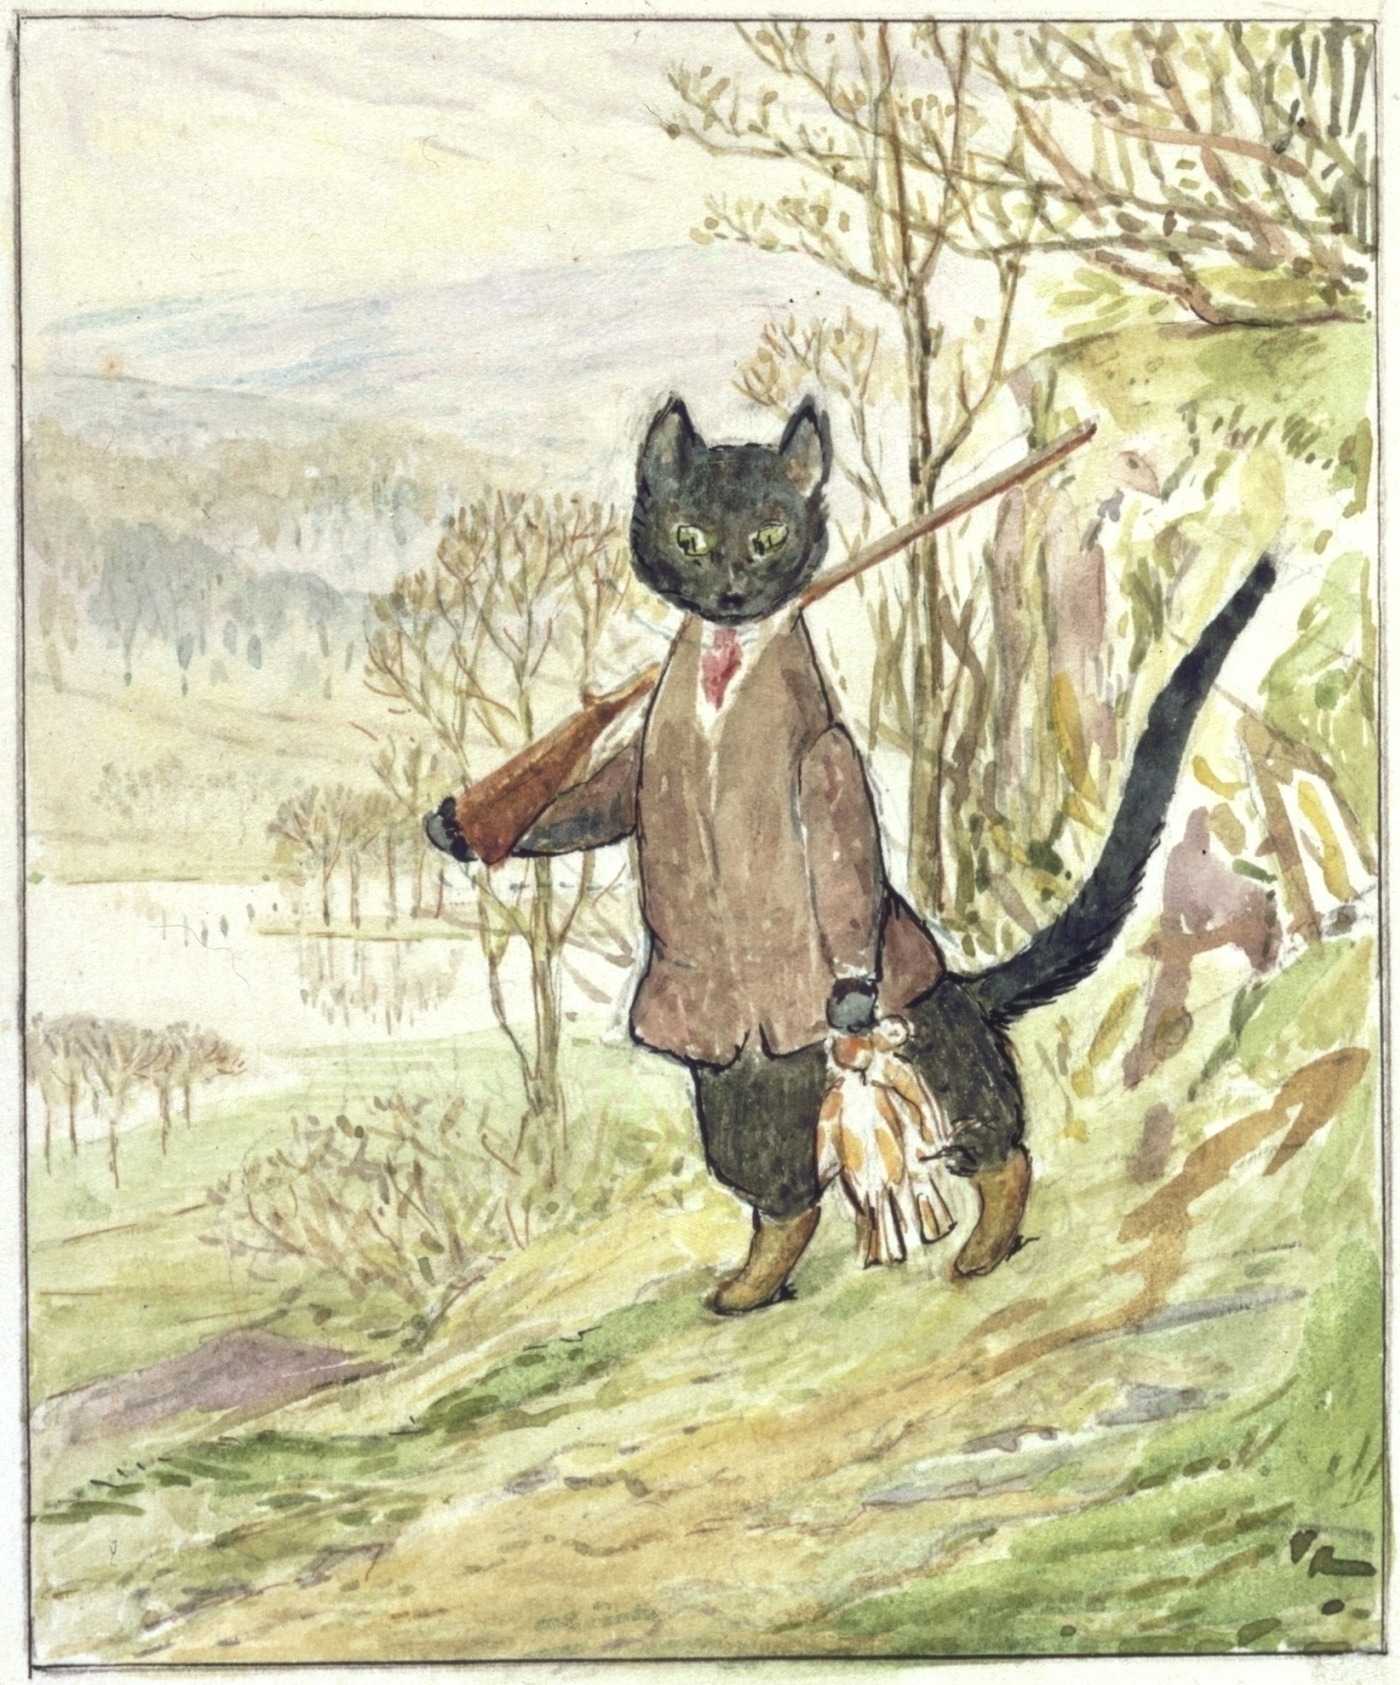 Beatrix Potter wrote three drafts of The Tale of Kitty-in-Boots and did one watercolor illustration (above). But the book was left incomplete when she died in 1943, and it is now being published posthumously, with illustrations by Quentin Blake.